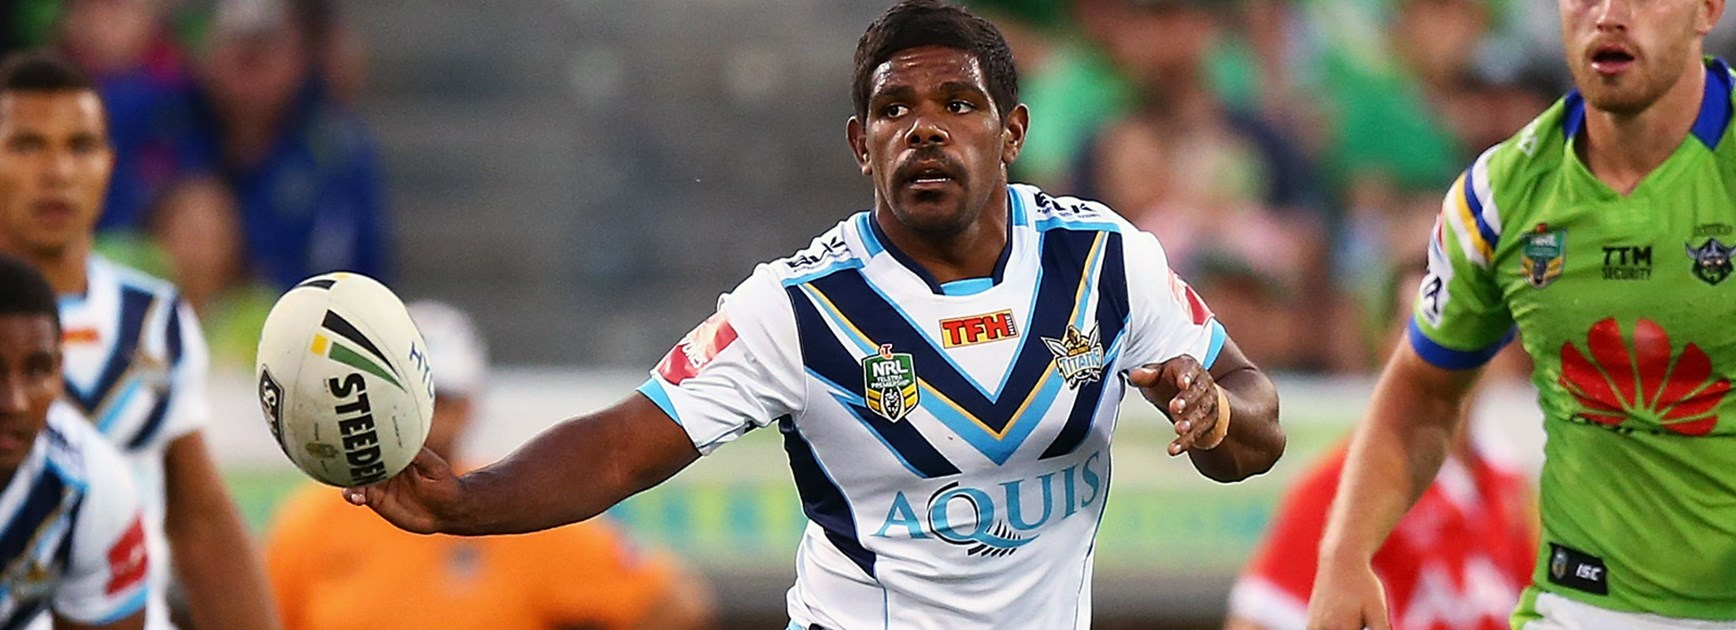 Titans hooker Kierran Moseley returns to first grade in Round 8.